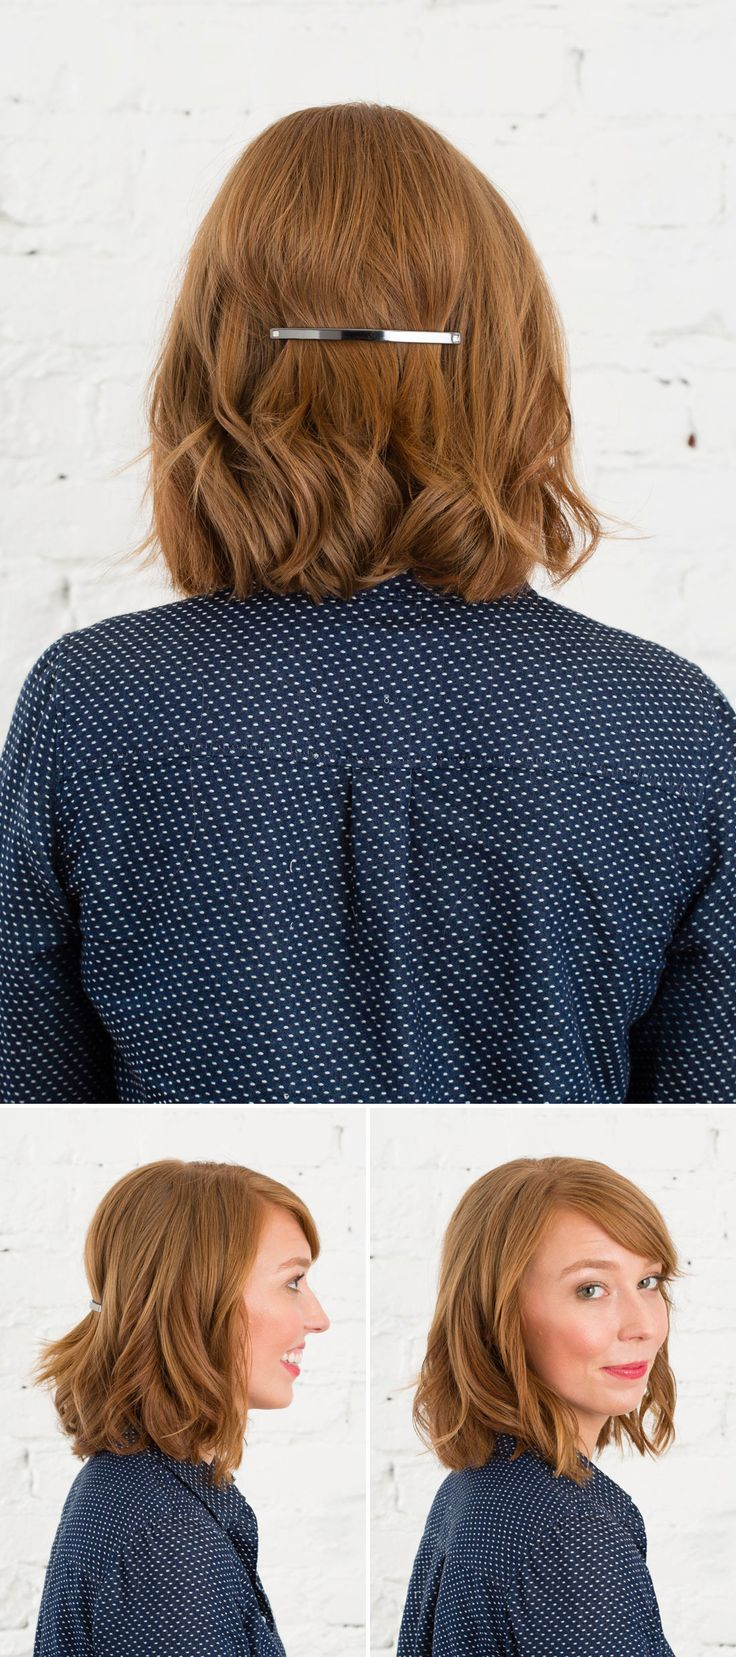 29 best hair images on pinterest | hairstyles, hair and make up